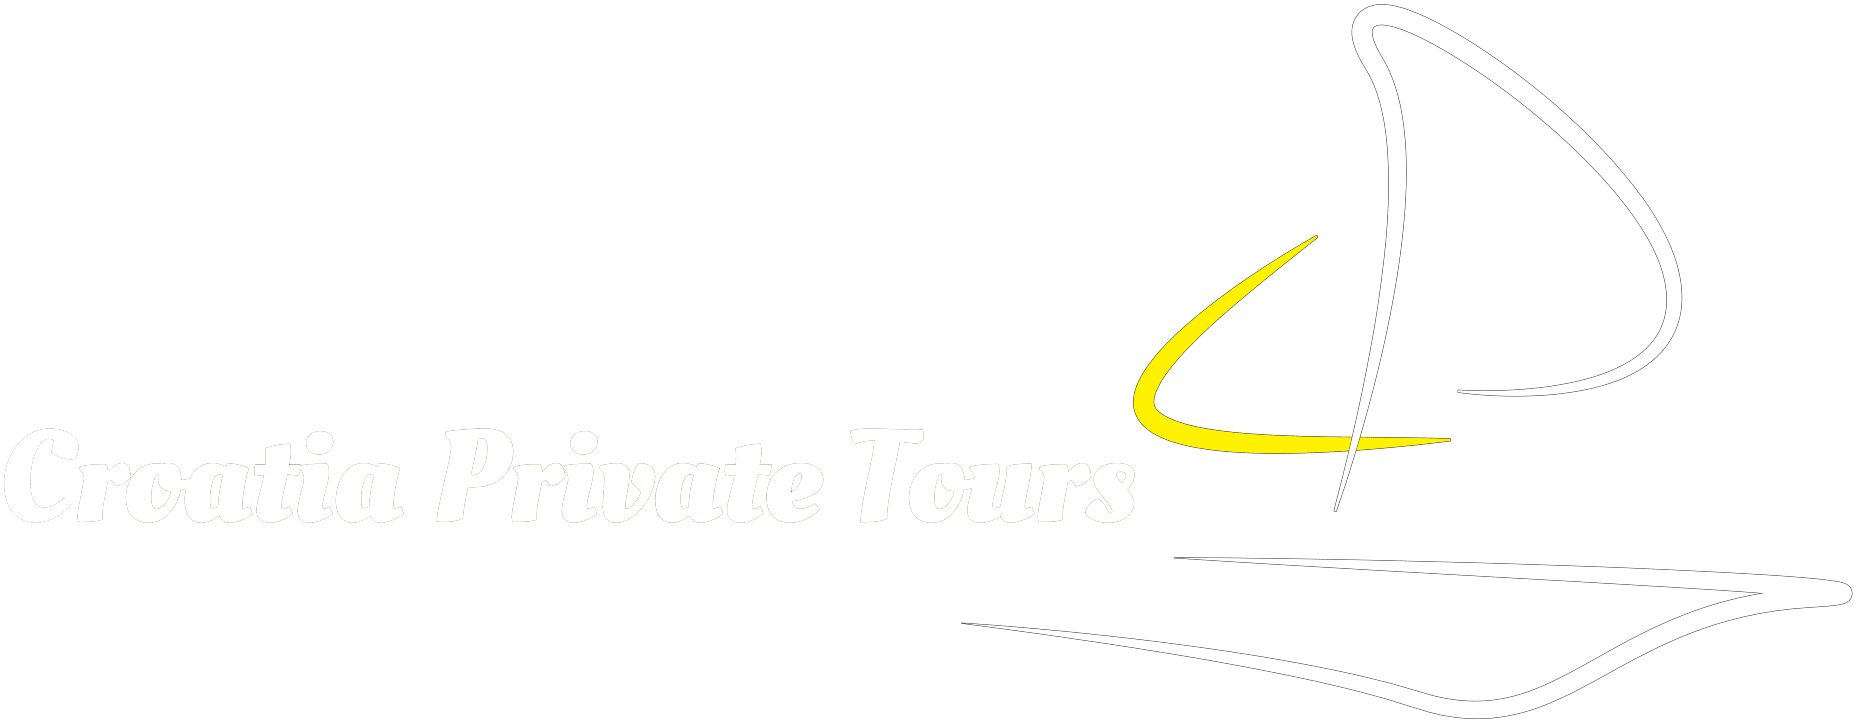 Croatia Private Tours tailor made private transfer in Croatia logo